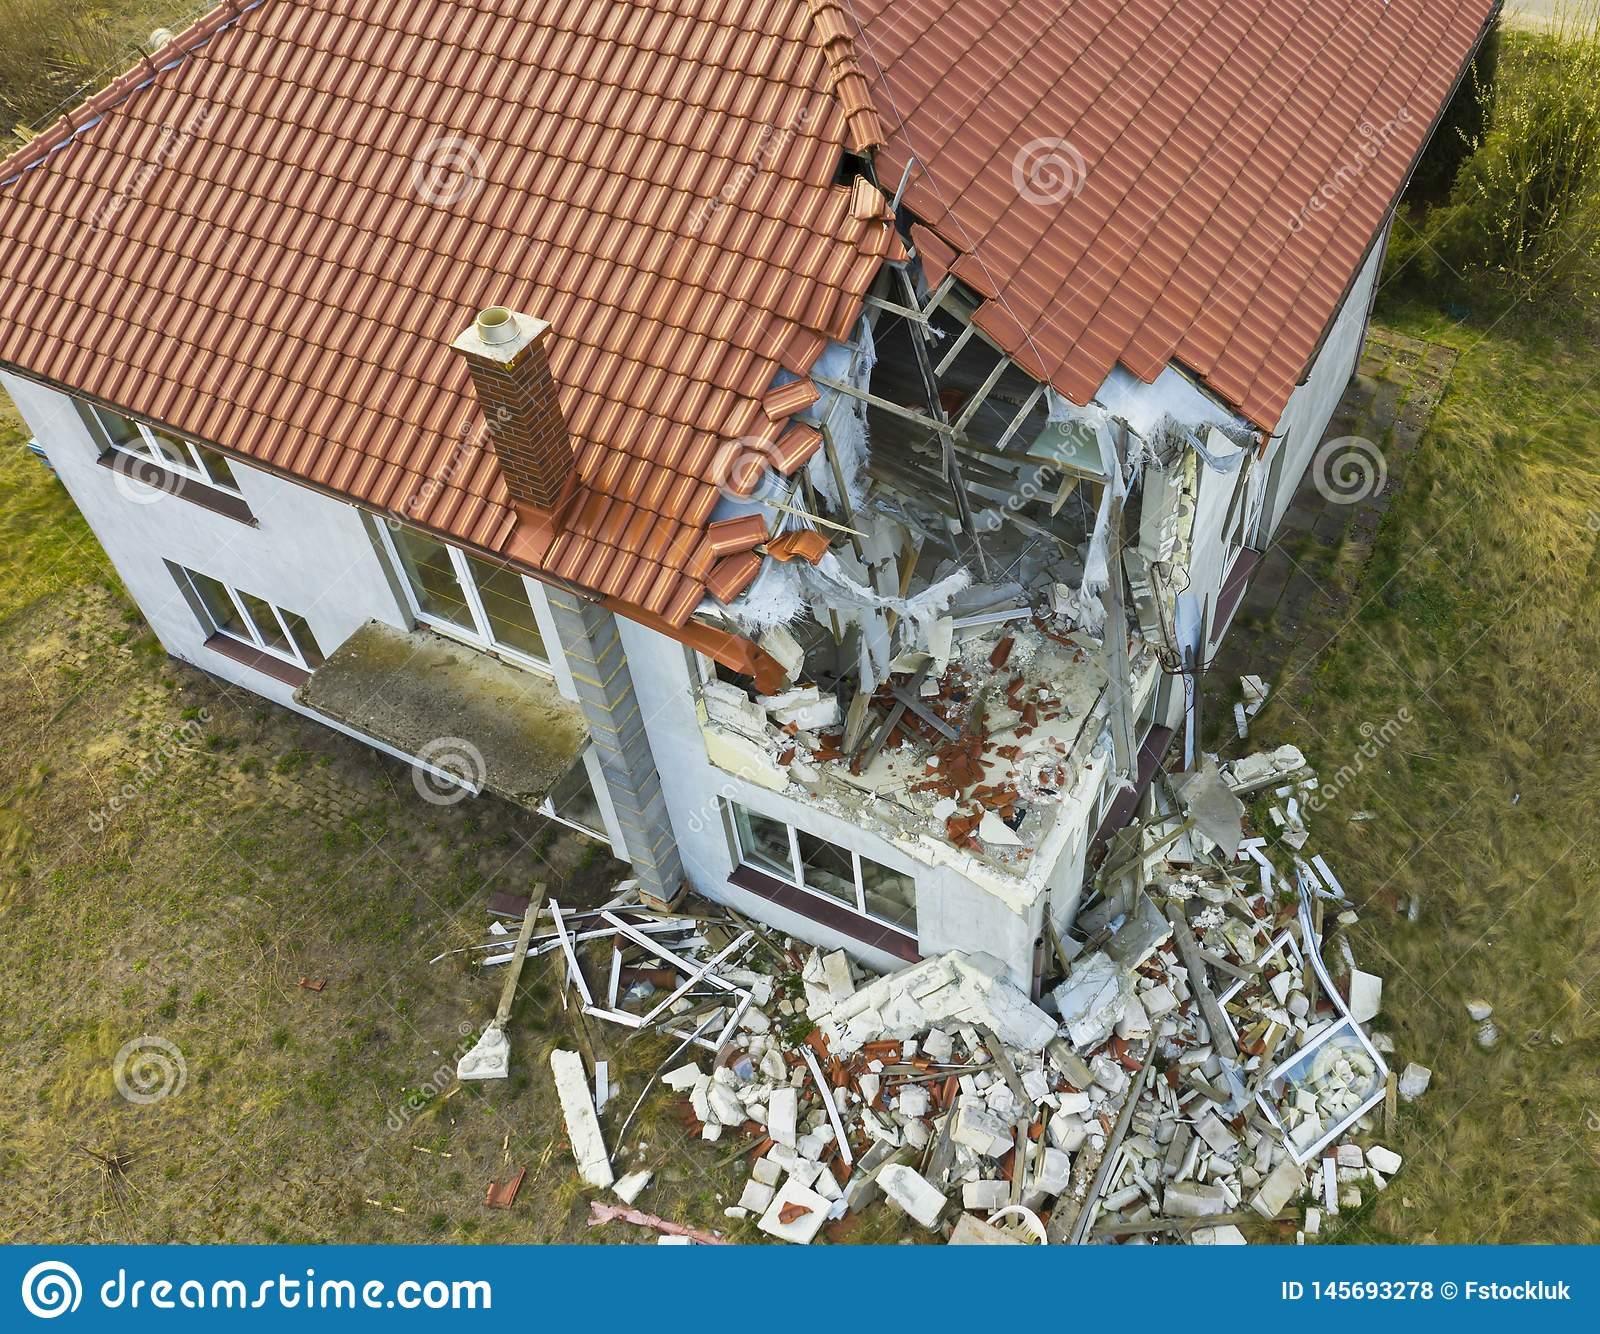 Aerial view on damaged red single house roof after strong wind or explosion. Hole in the rooftop and floor. Rubble on the ground